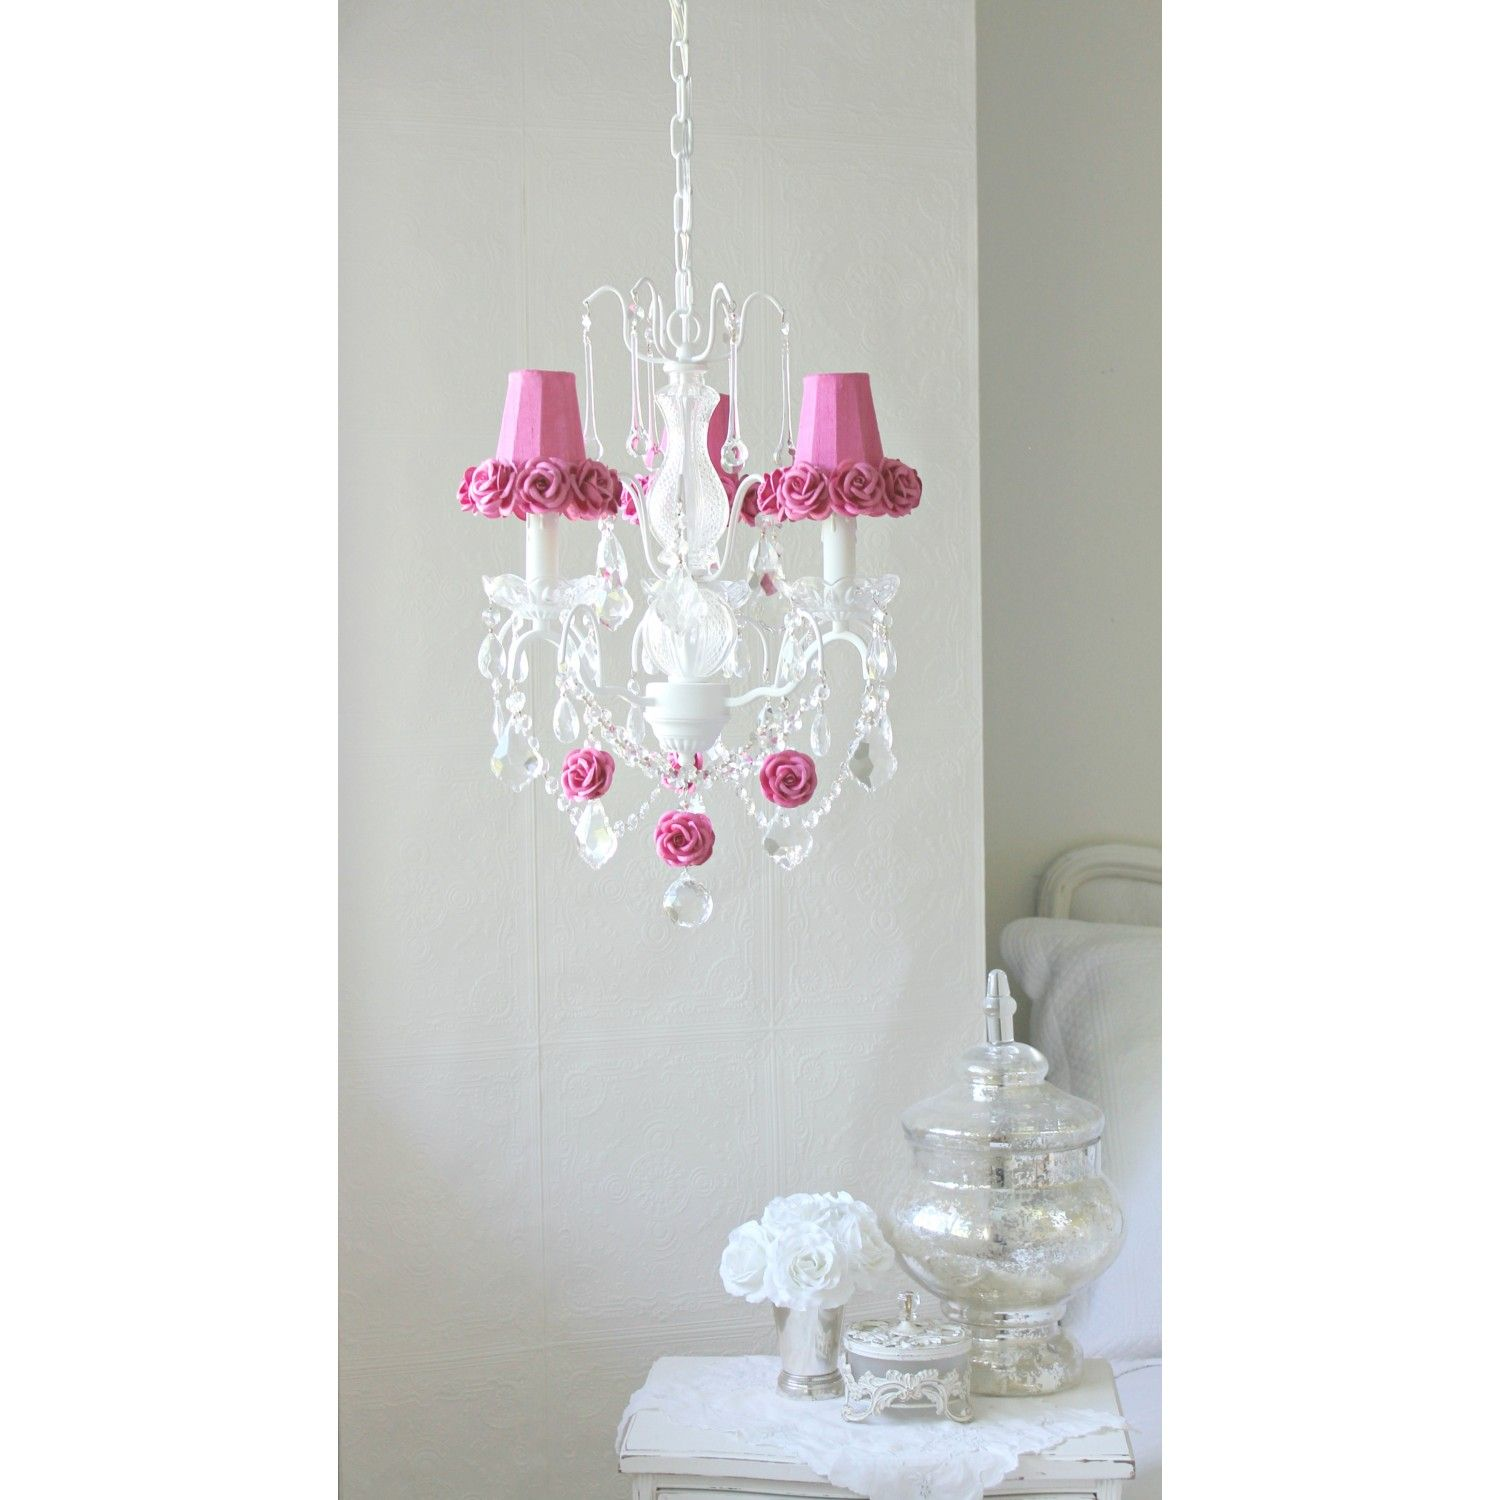 Hot Pink Rose Lamp Shade Chandelier